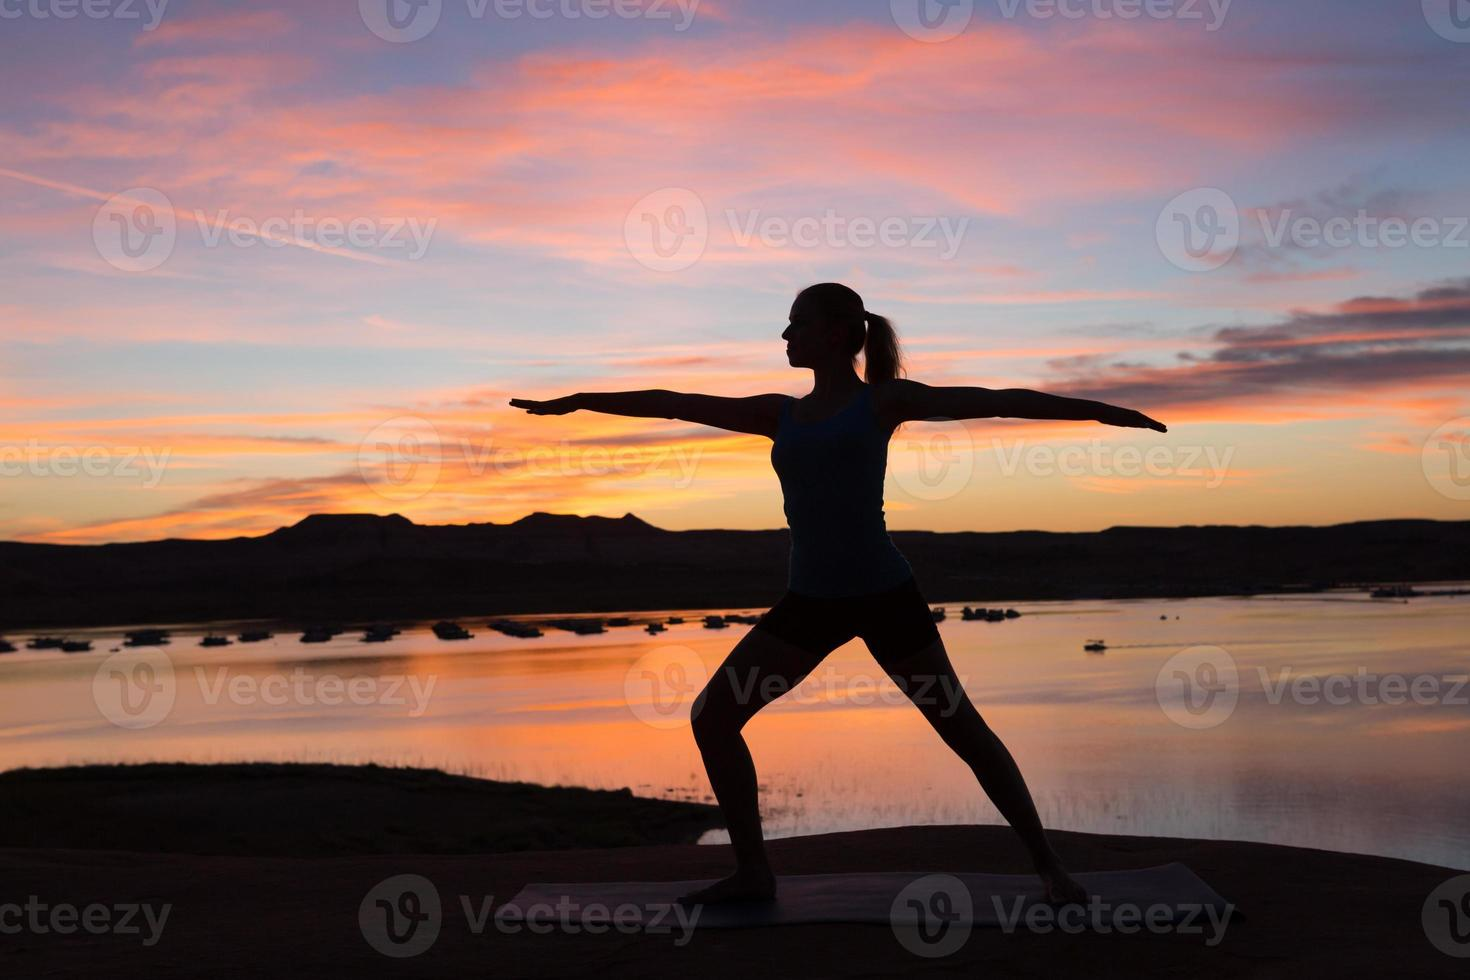 Morning Yoga by the Lake photo